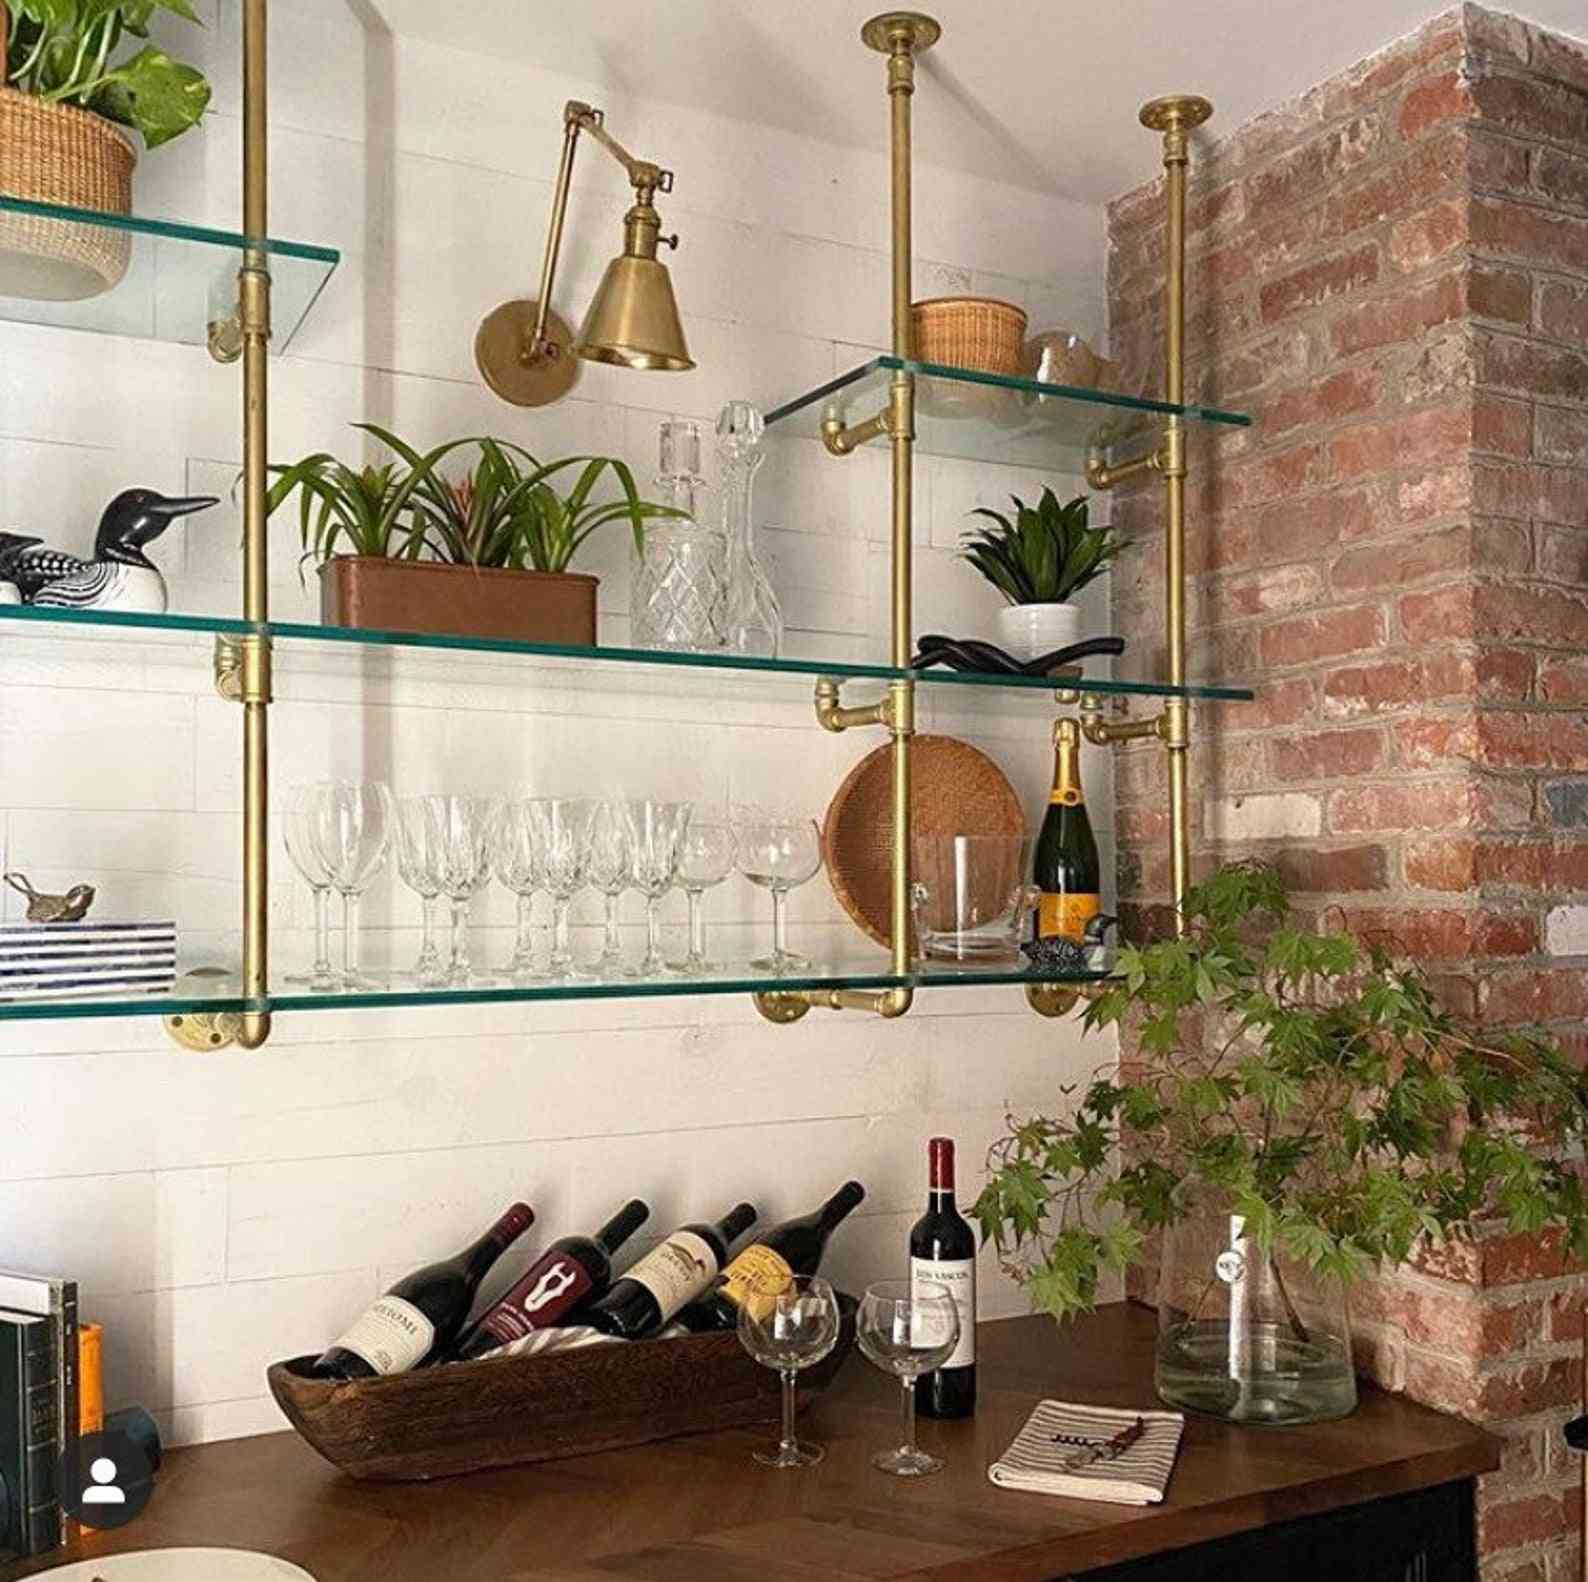 Glass shelves hanging in a kitchen